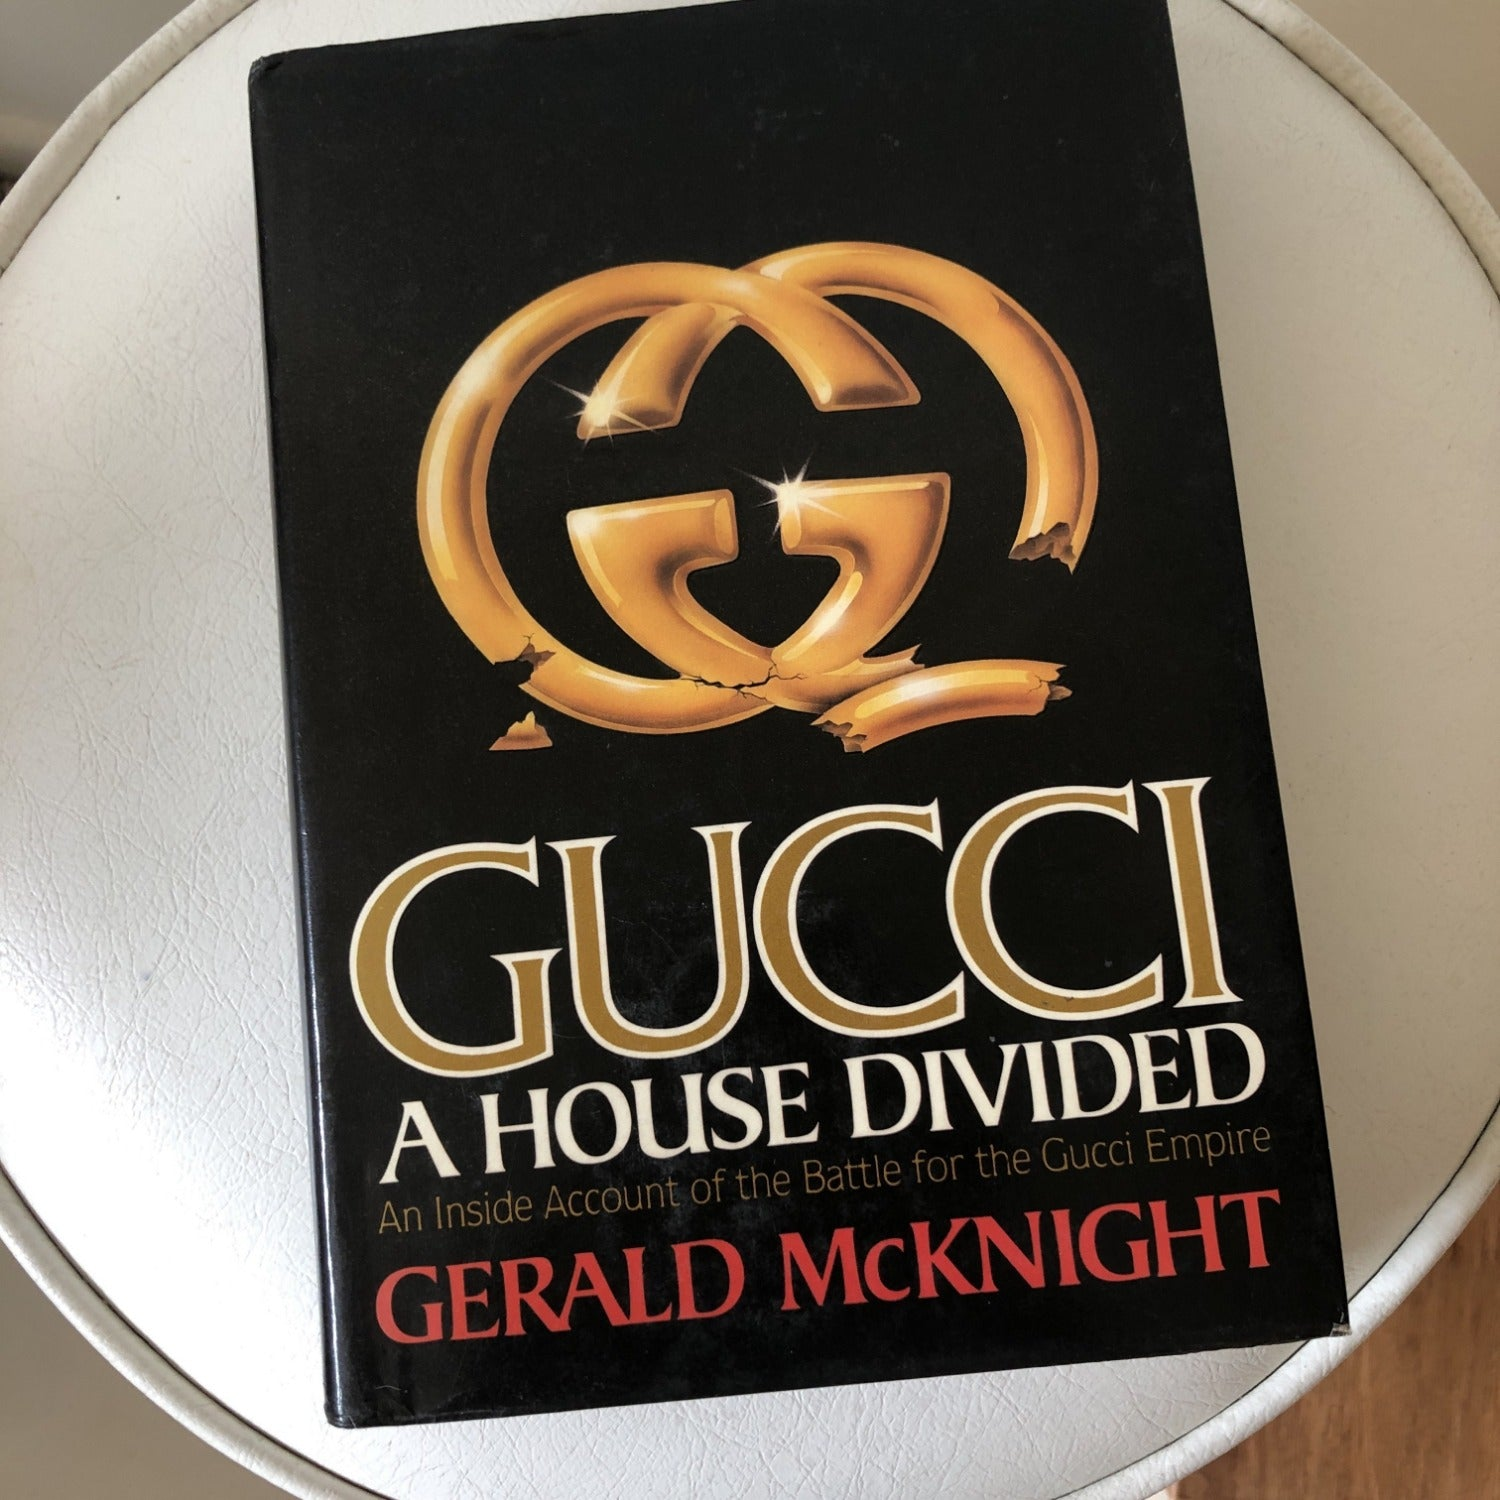 Gucci: A House Divided by Gerald McKnight